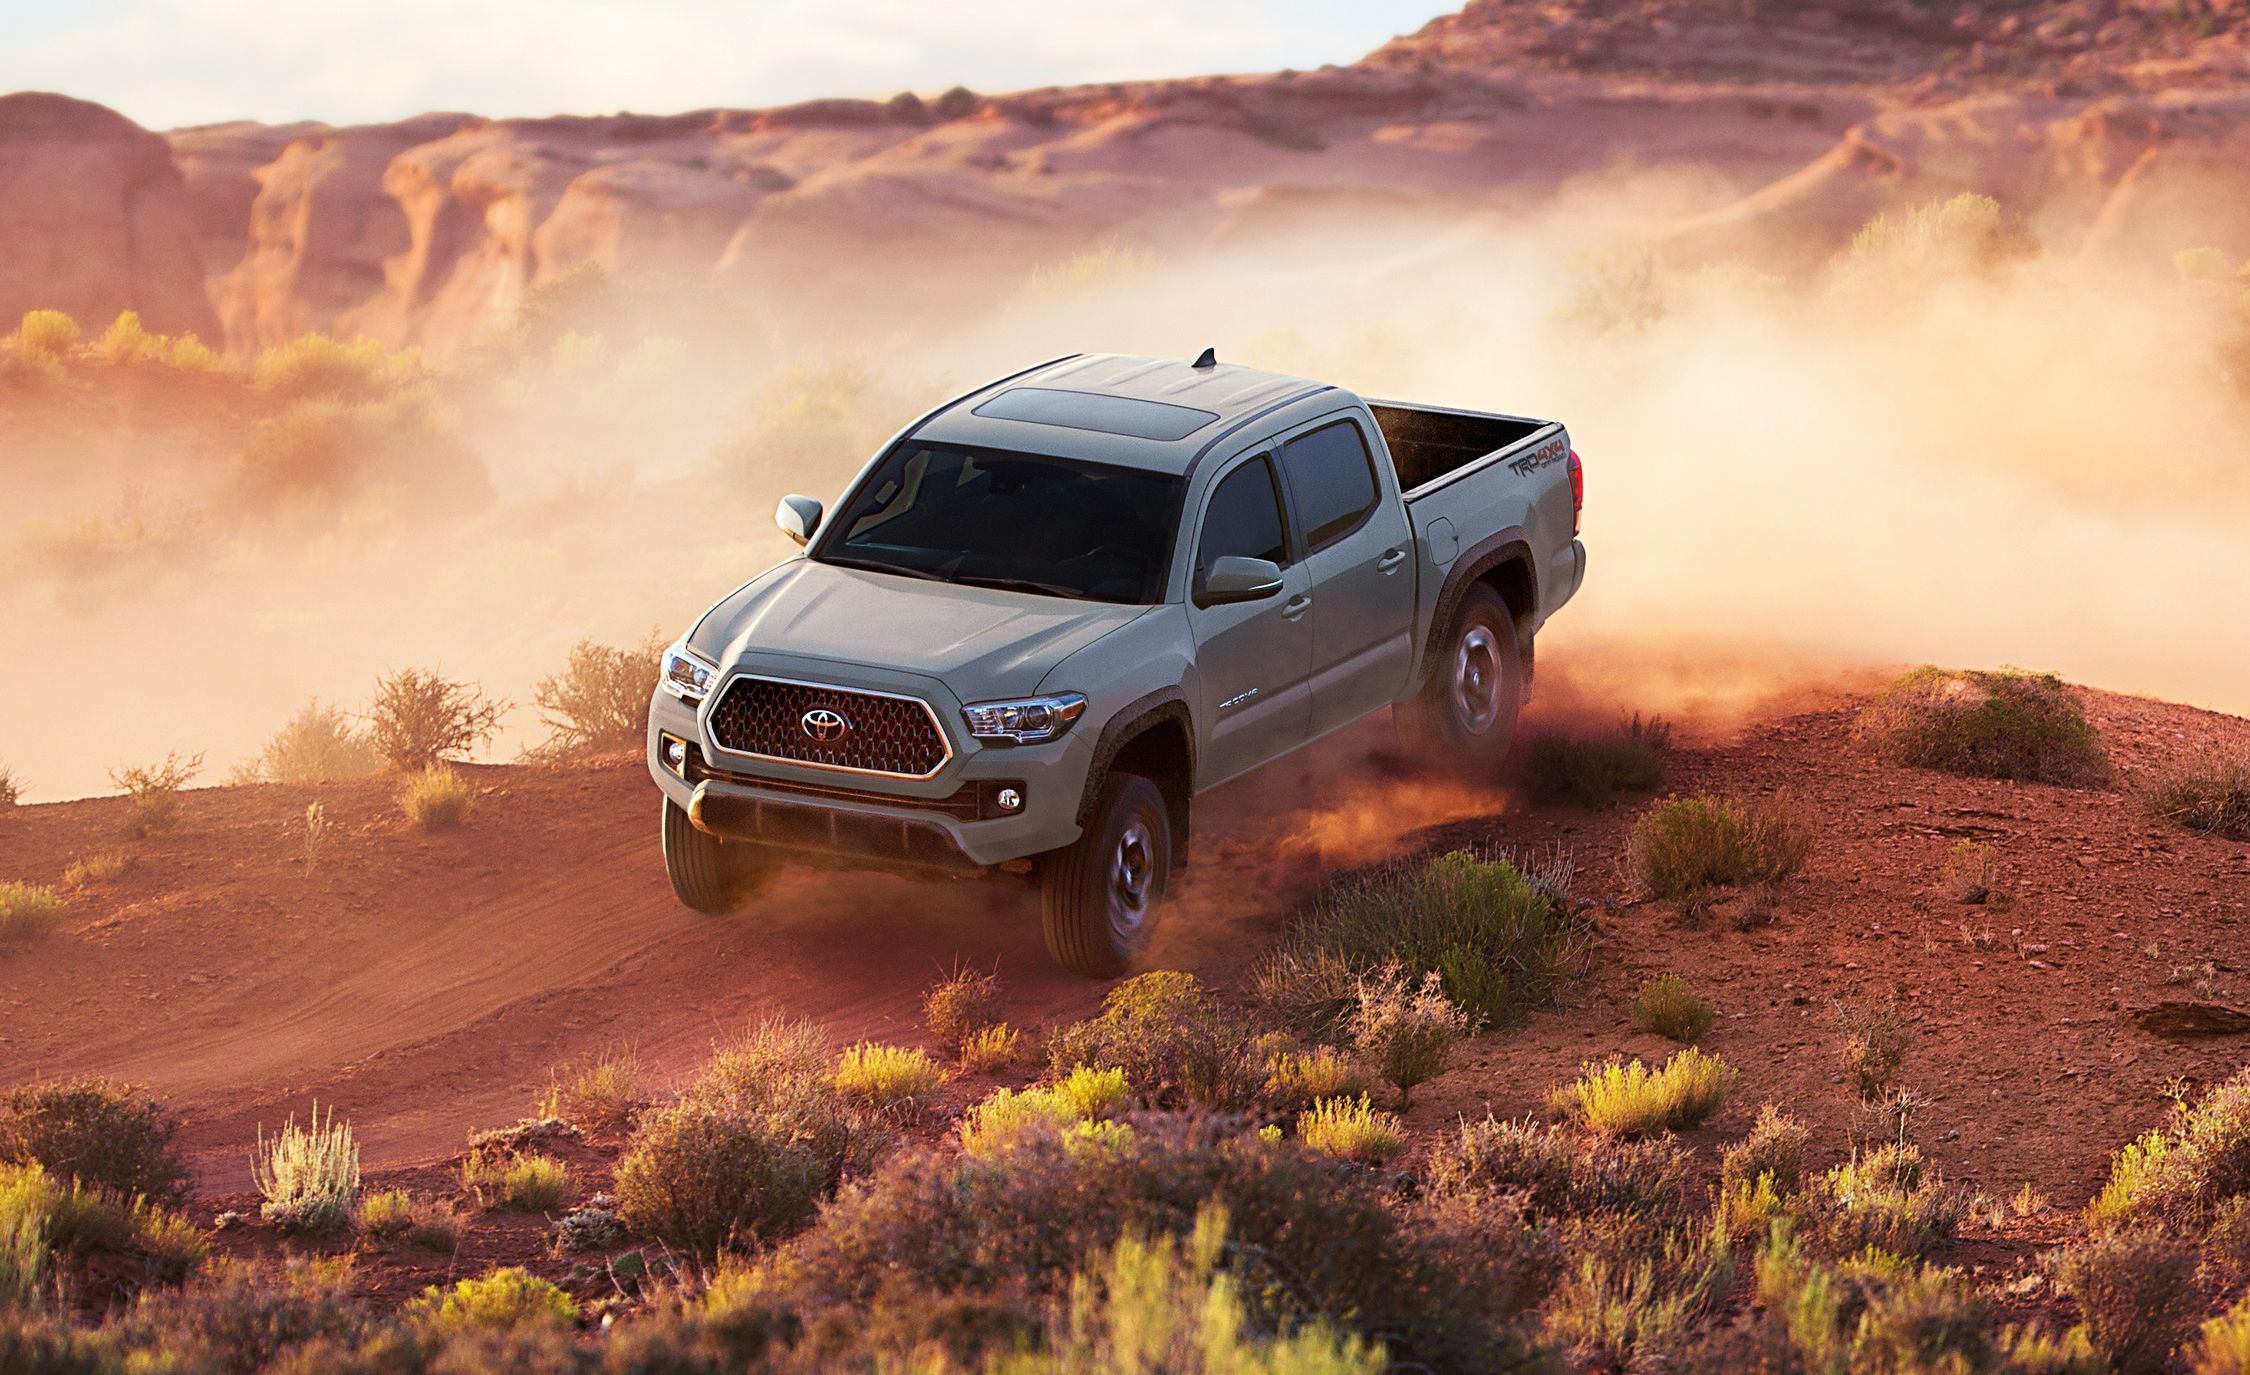 Toyota Tacoma Reviews | Toyota Tacoma Price, Photos, and ...